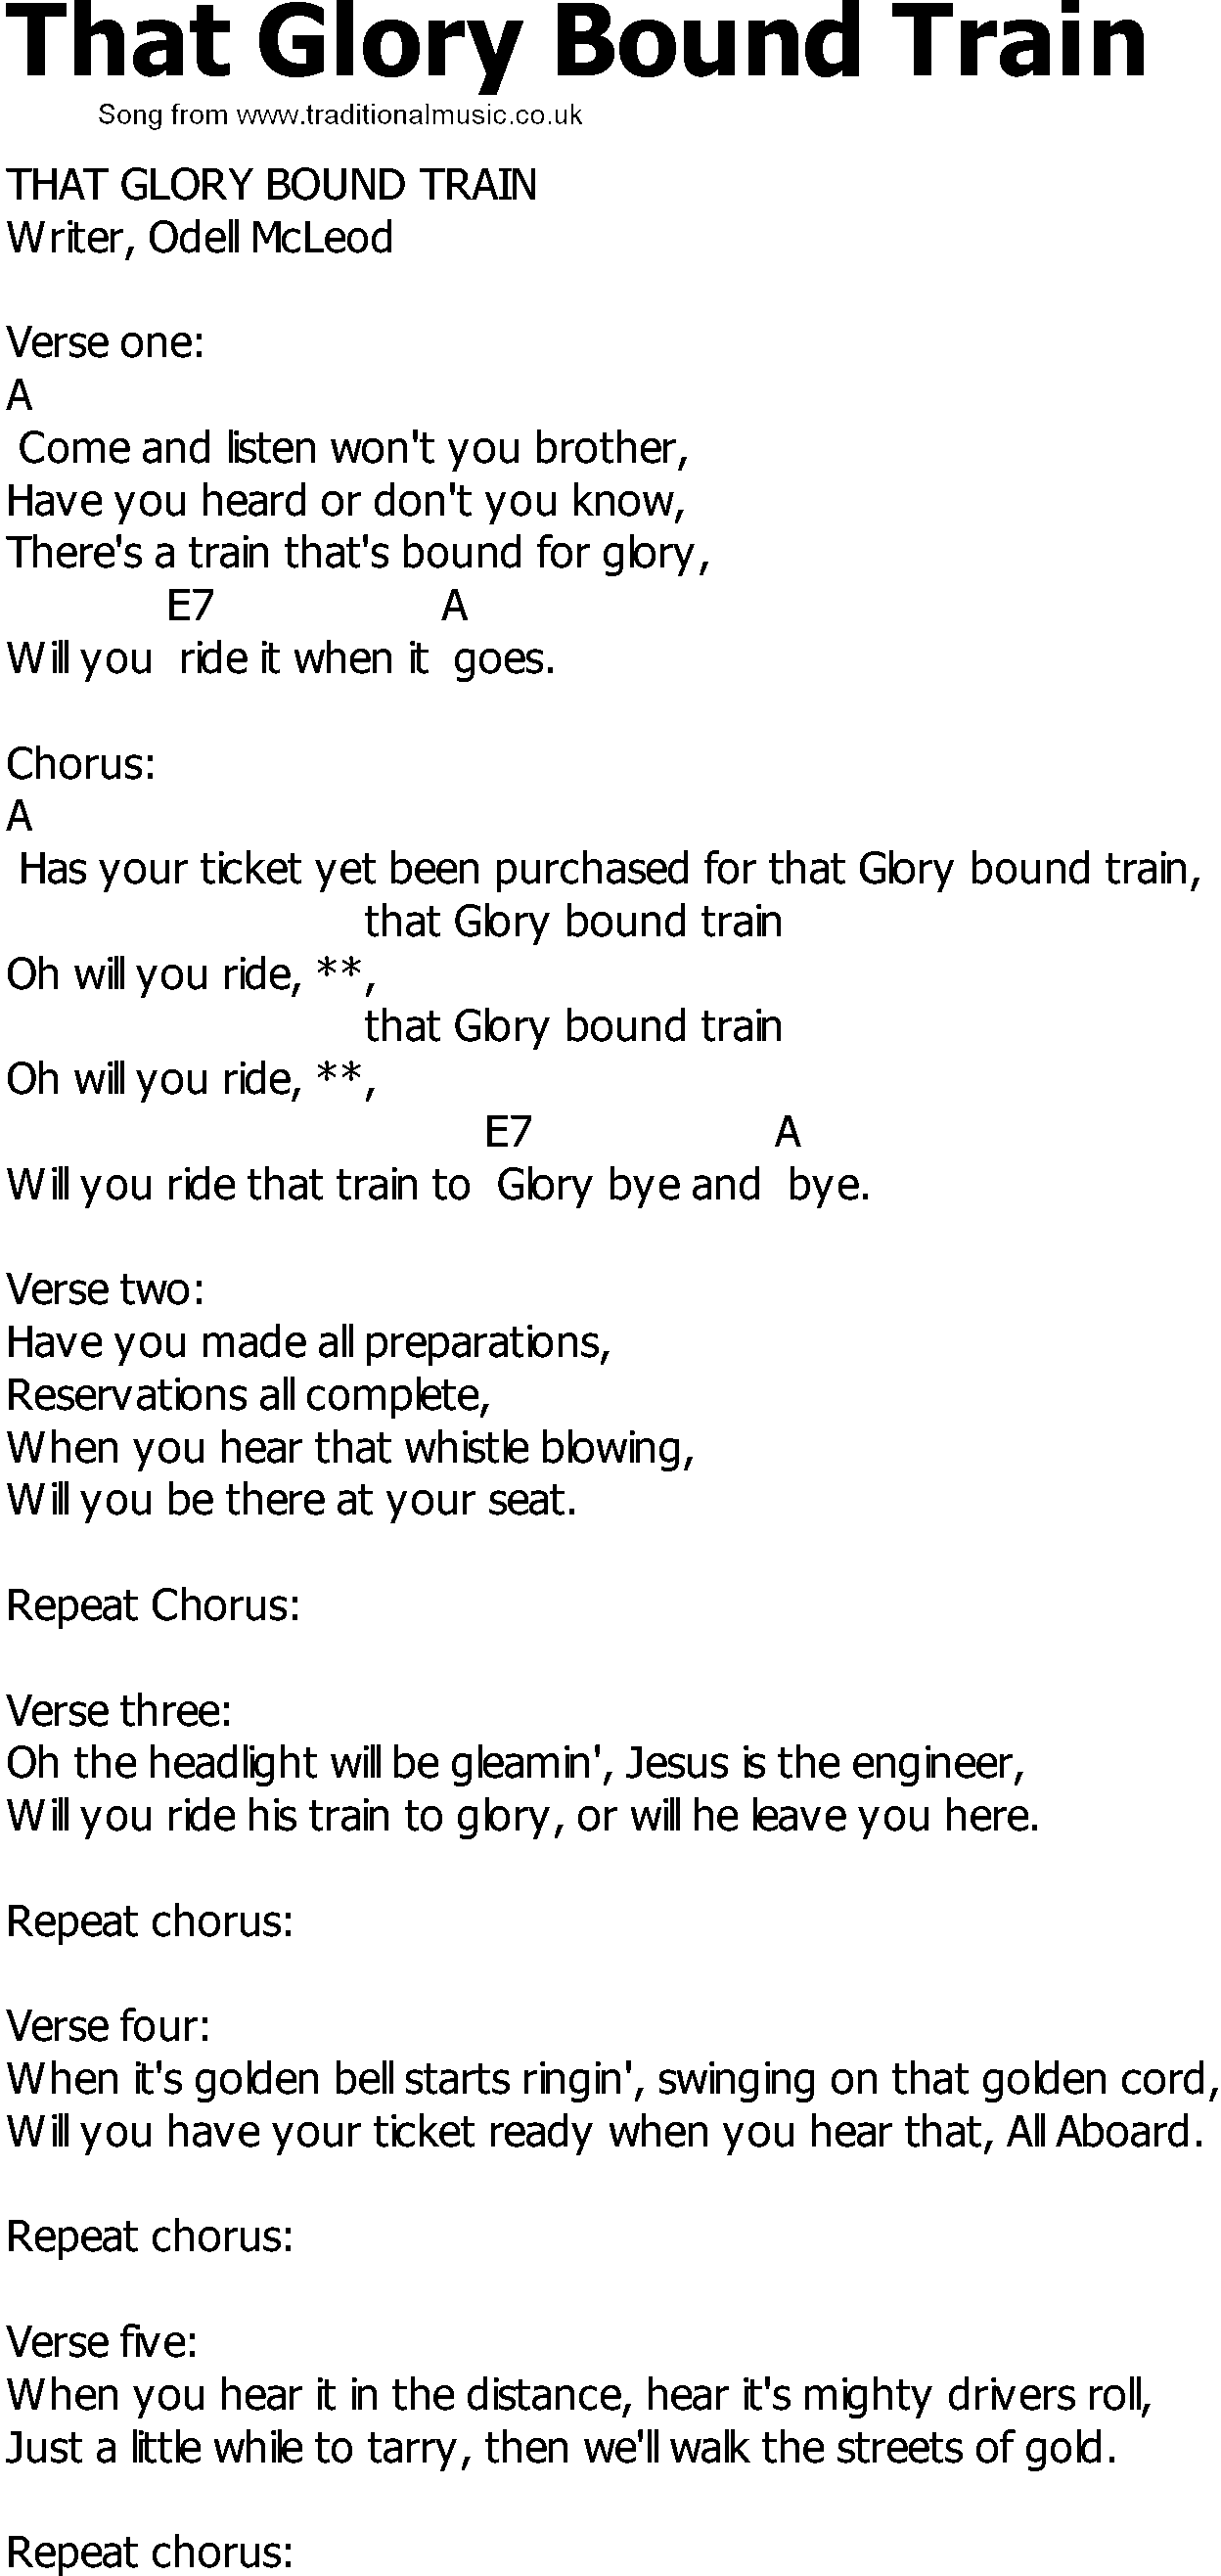 Old Country Song Lyrics With Chords That Glory Bound Train